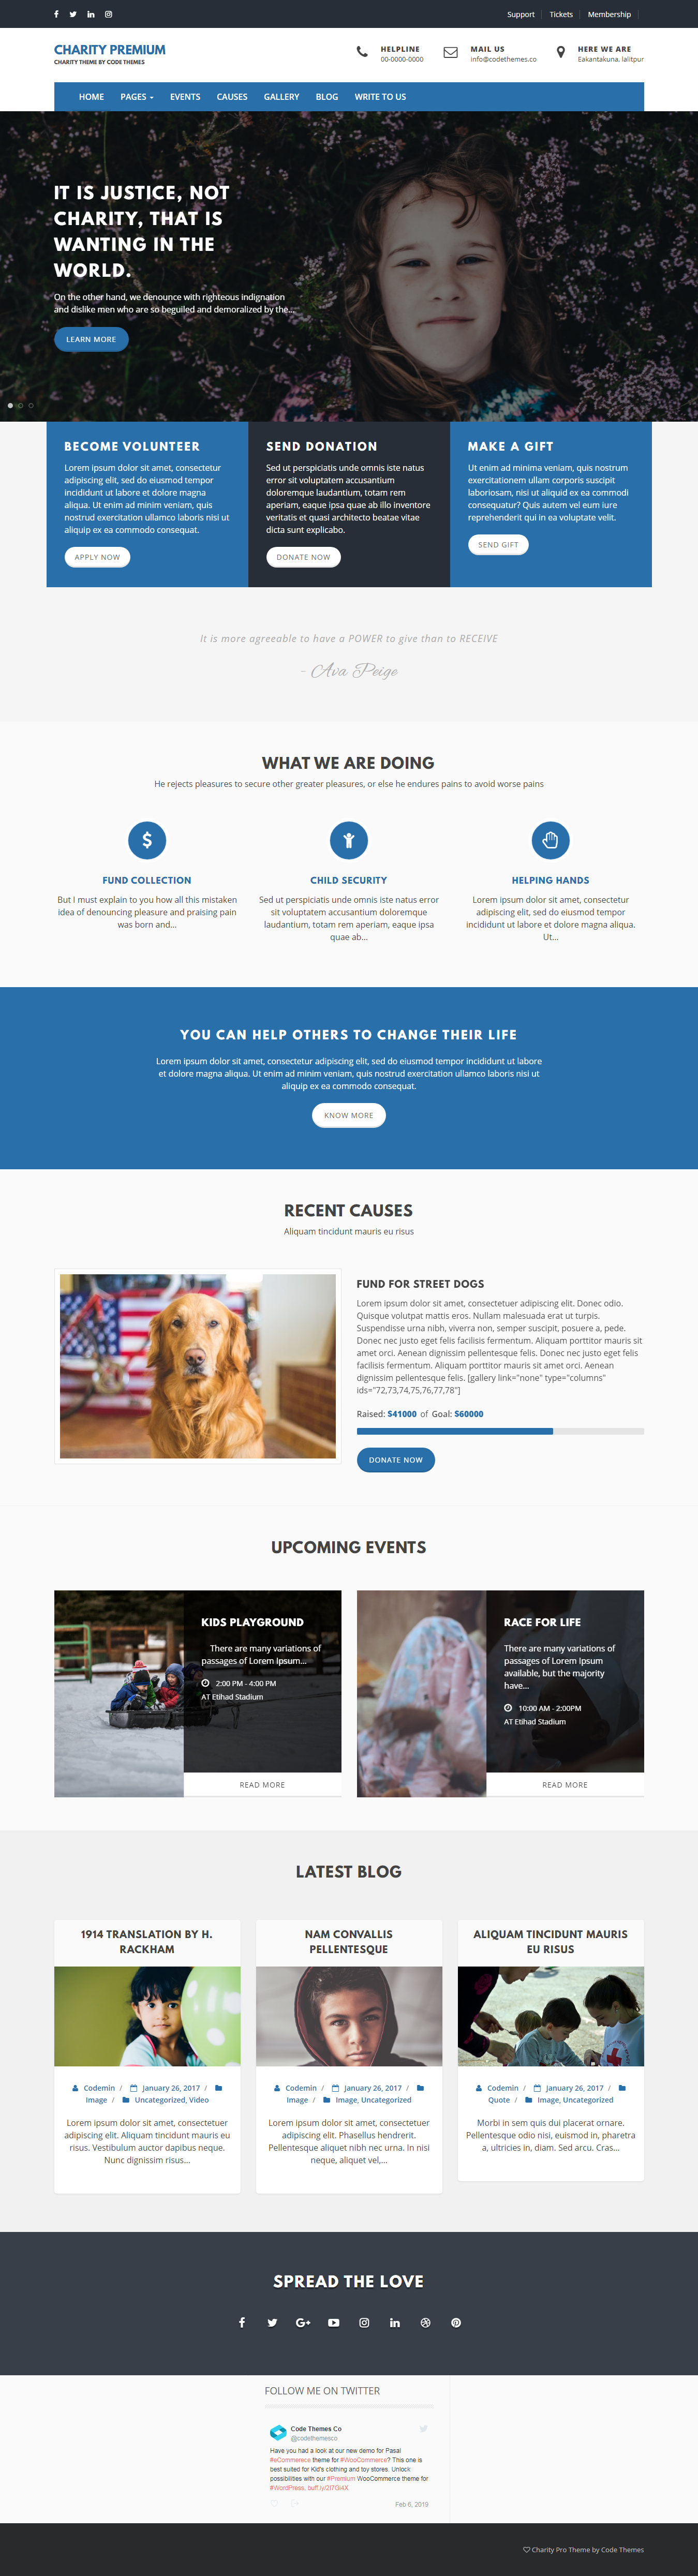 charity review best free church wordpress theme - 10+ Best Free WordPress Church Themes